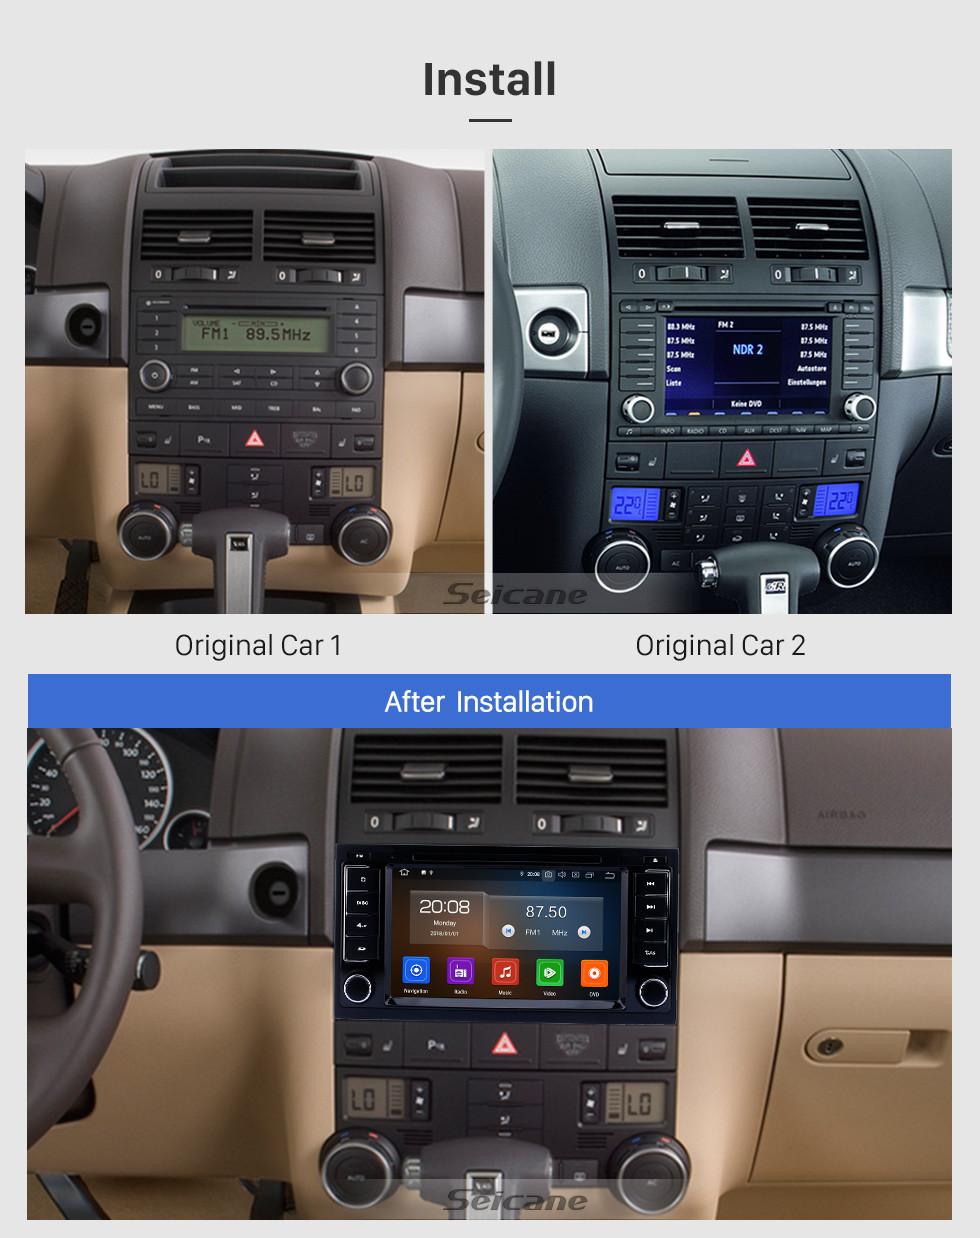 Seicane HD Touchscreen 7 inch Android 10.0 for VW Volkswagen 2004 2005 2006-2011 Touareg 2009 T5 Multivan/Transporter GPS Navigation System Radio with Carplay Bluetooth support  DAB+